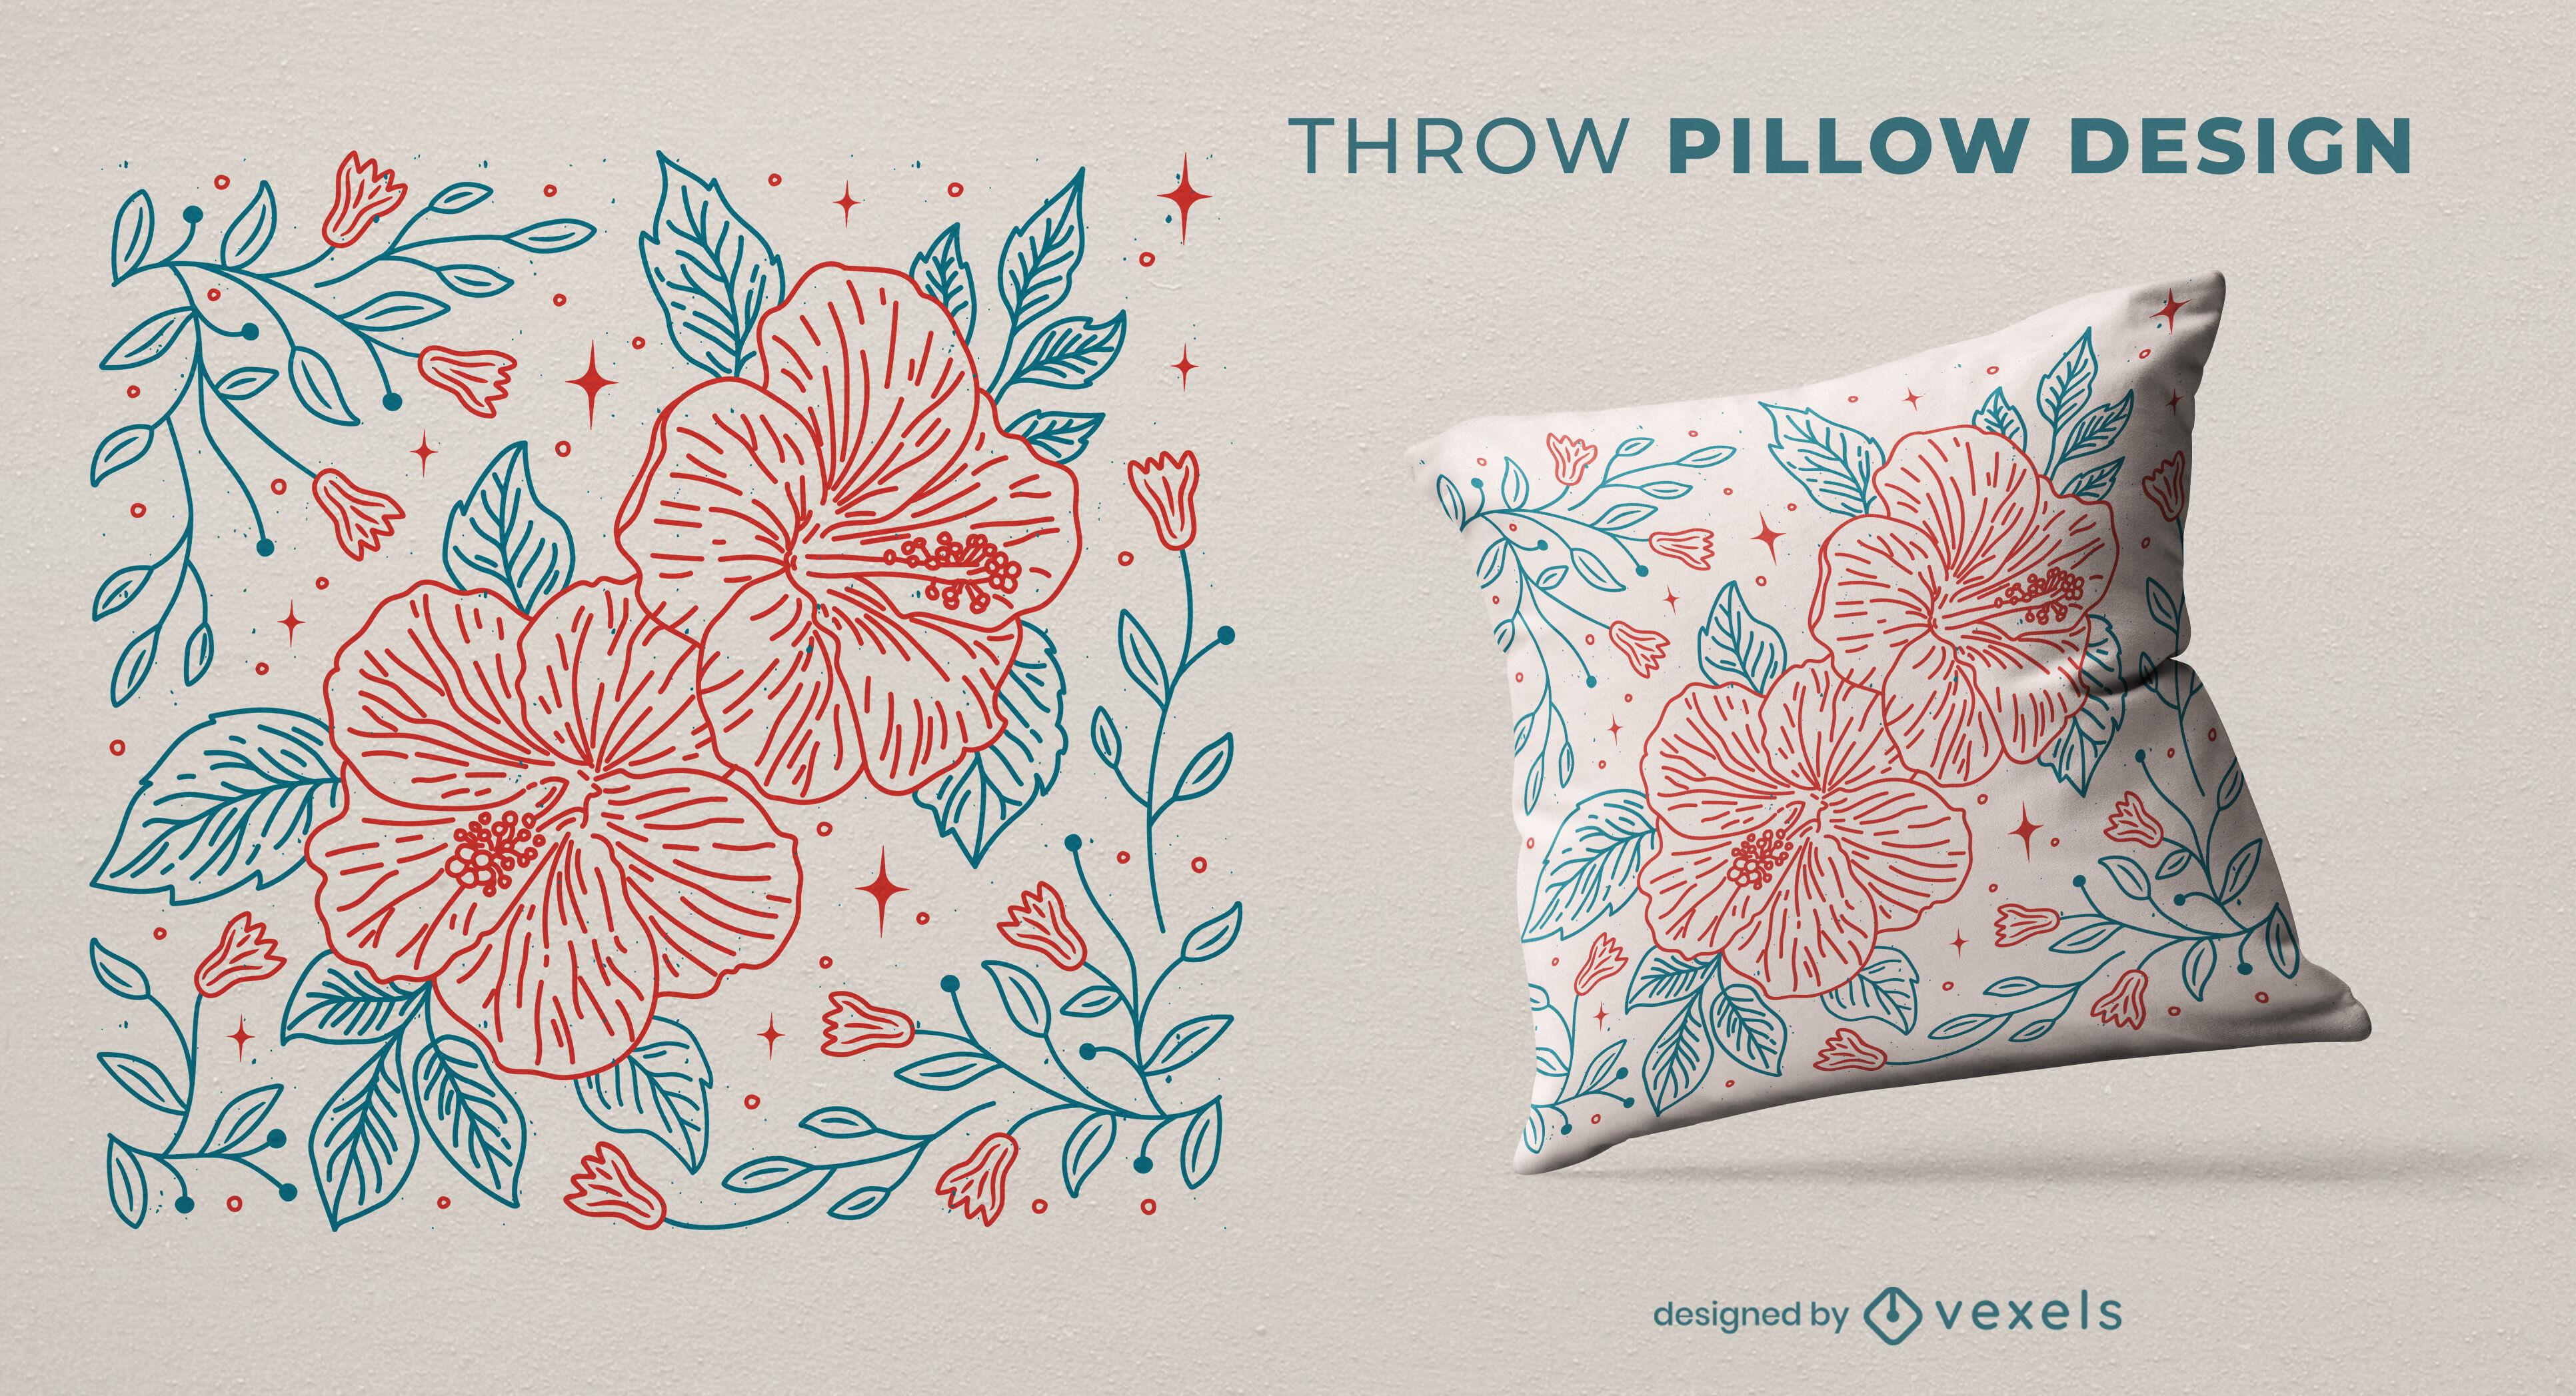 Flowers and leaves nature throw pillow design